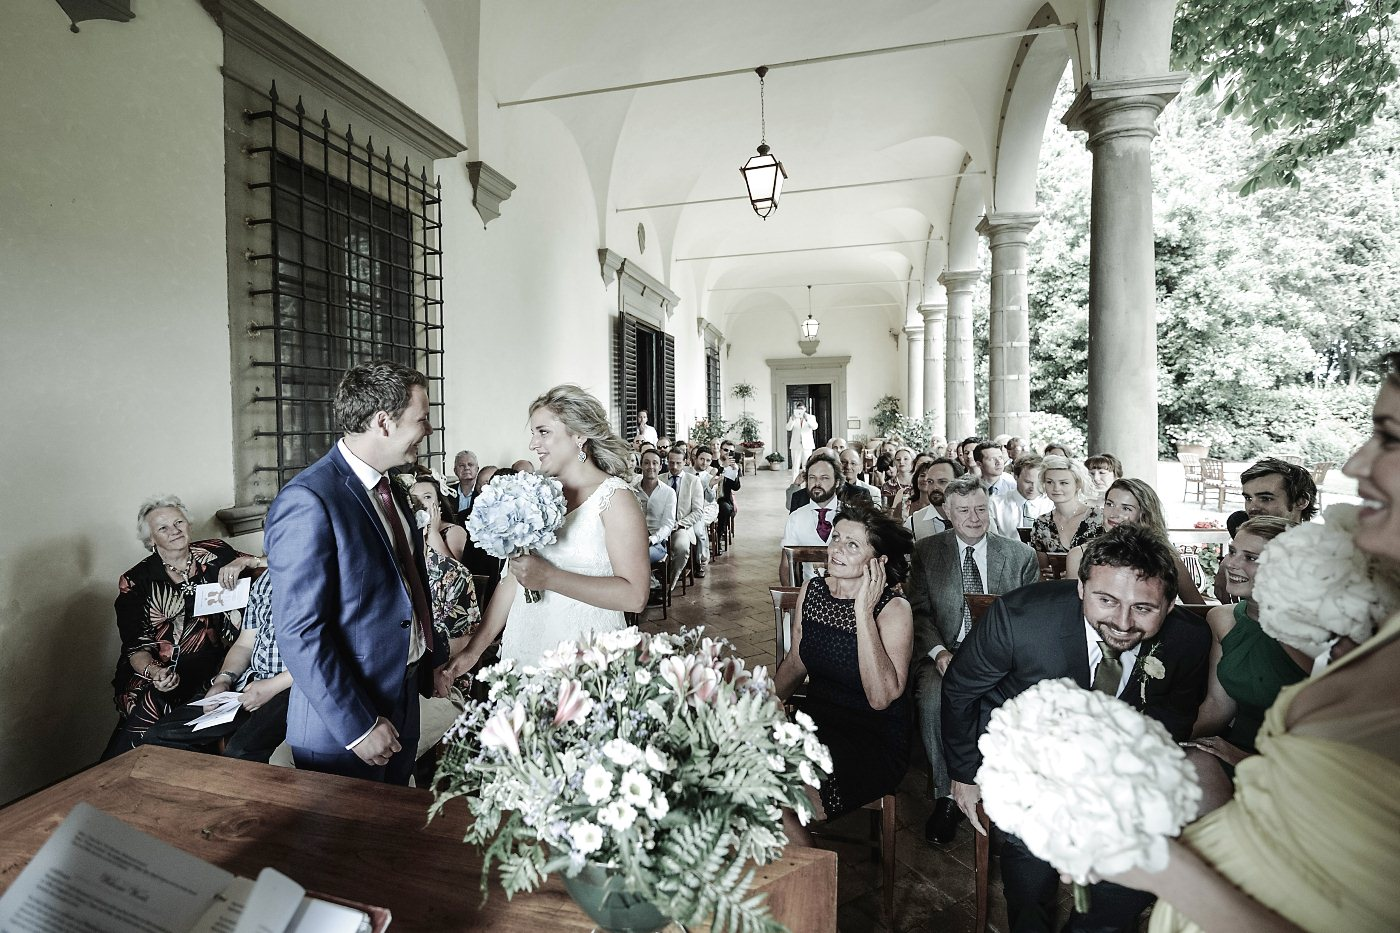 wedding photo villa il poggiale_06.jpg